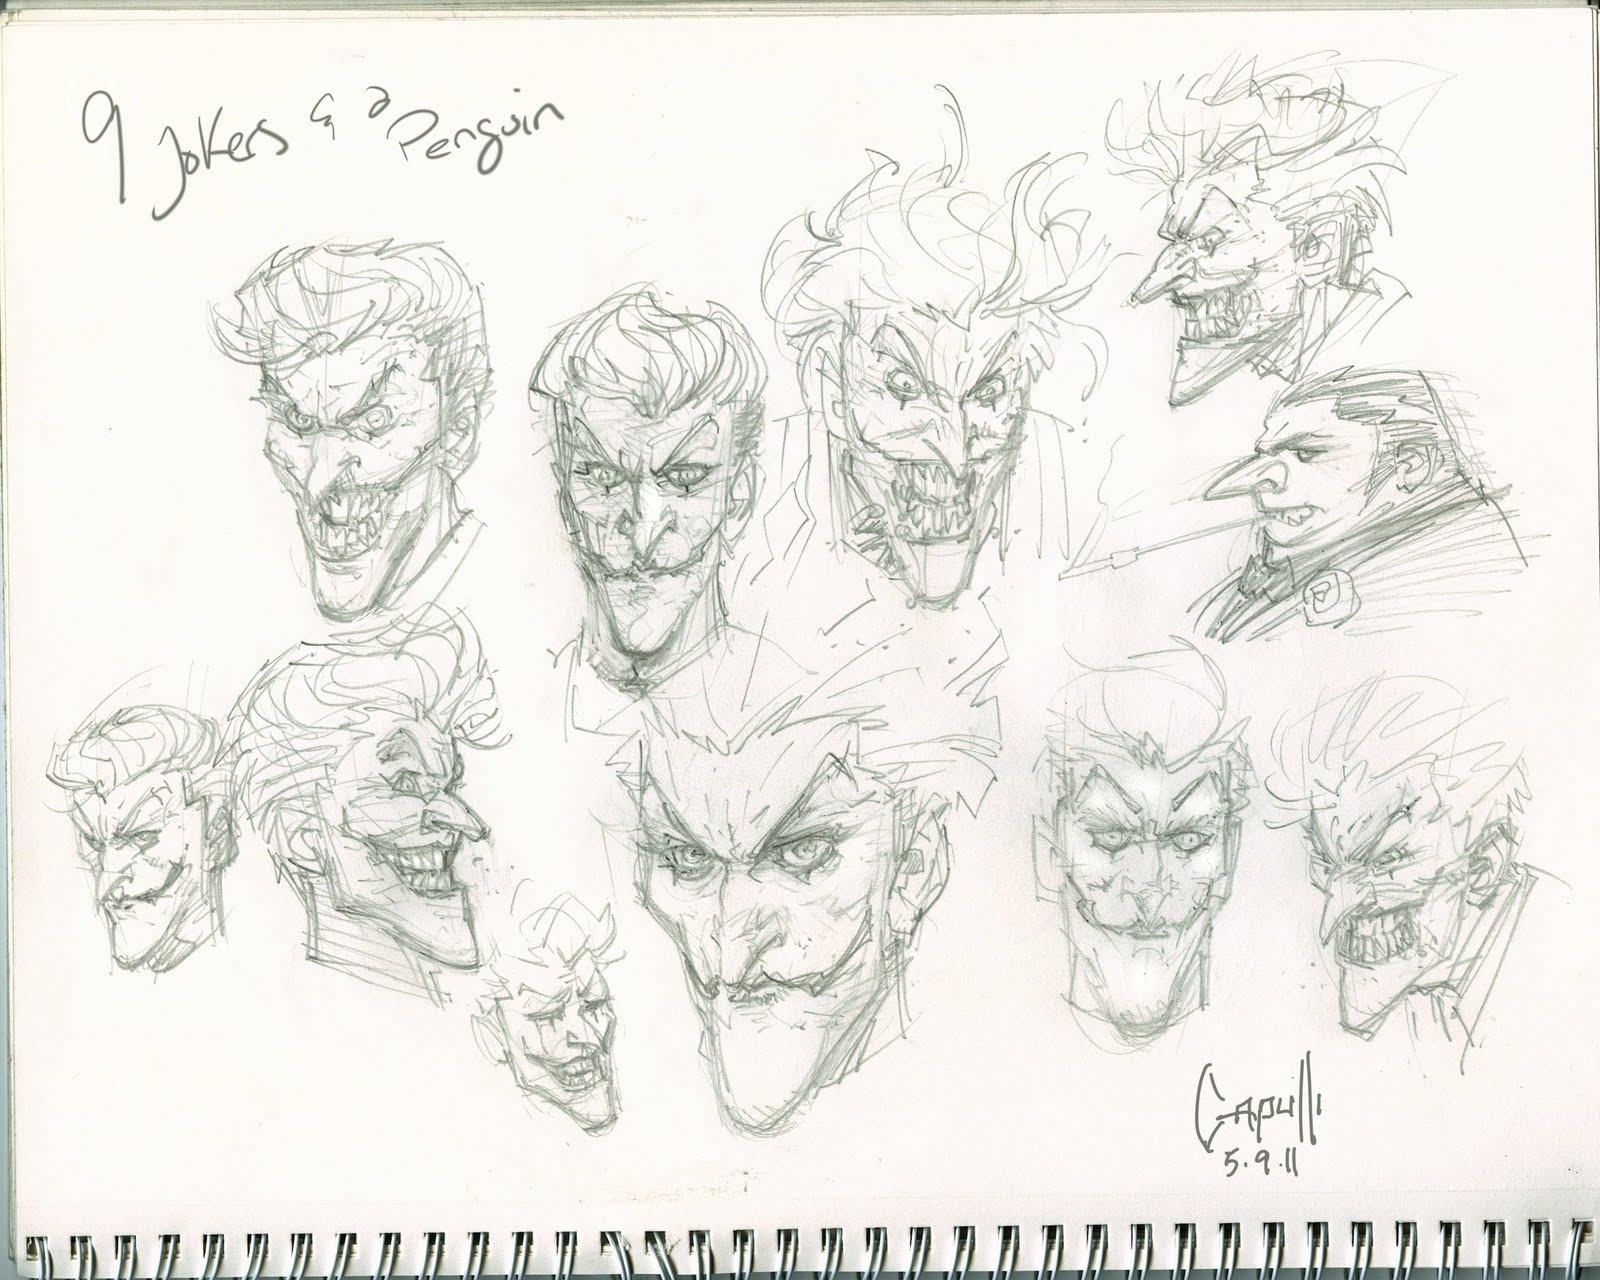 No One Equals Doom Capullo Joker Penguin Sketches